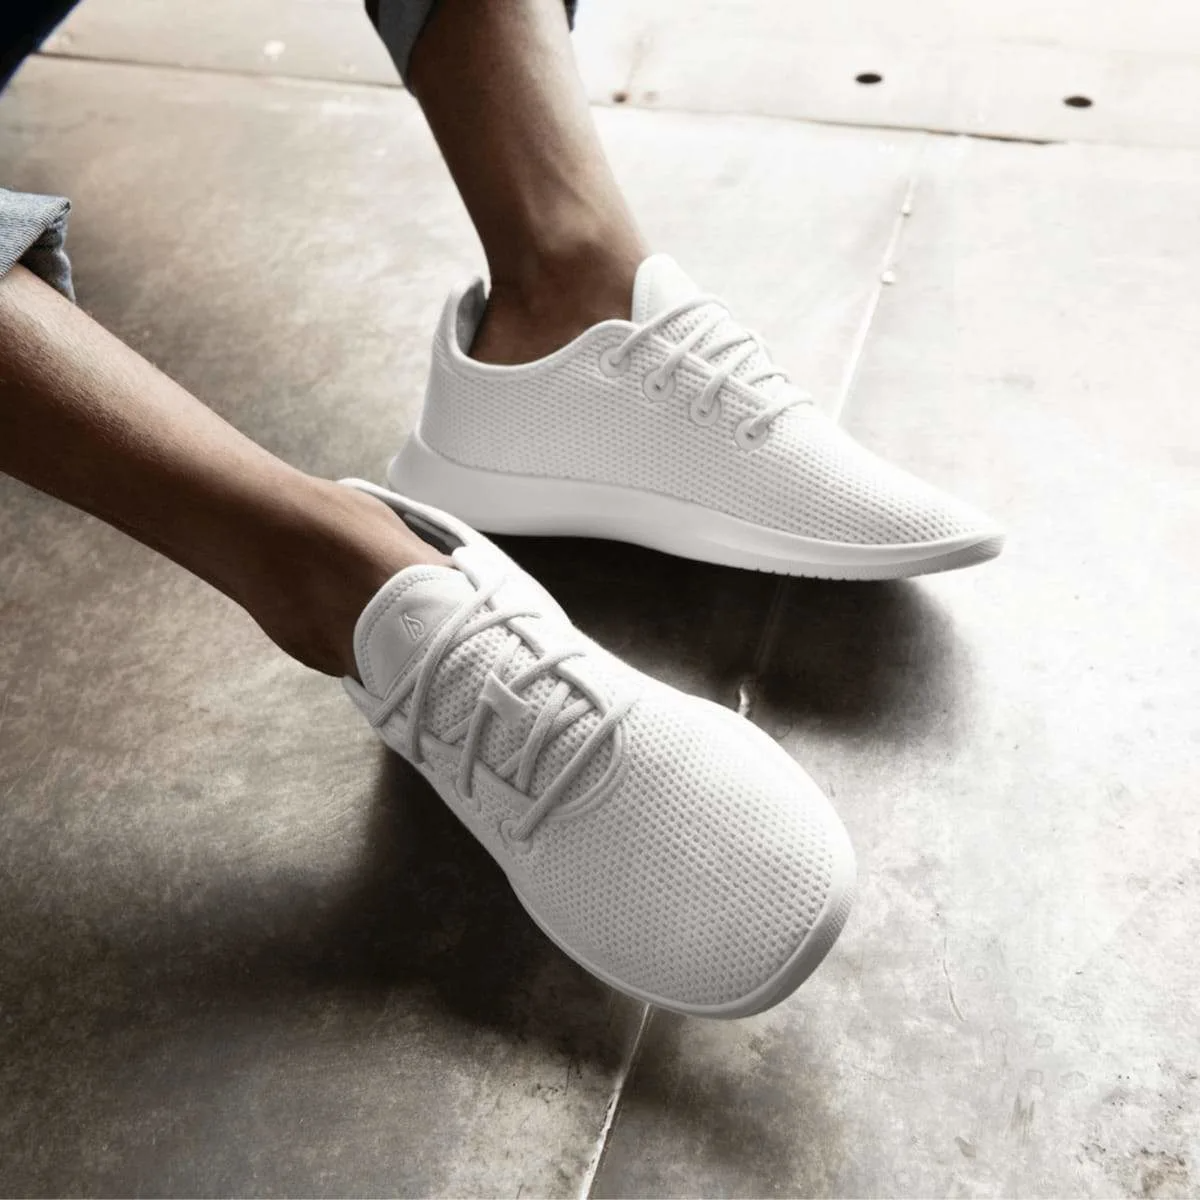 A pair of white Allbird sneaker on a model's feet